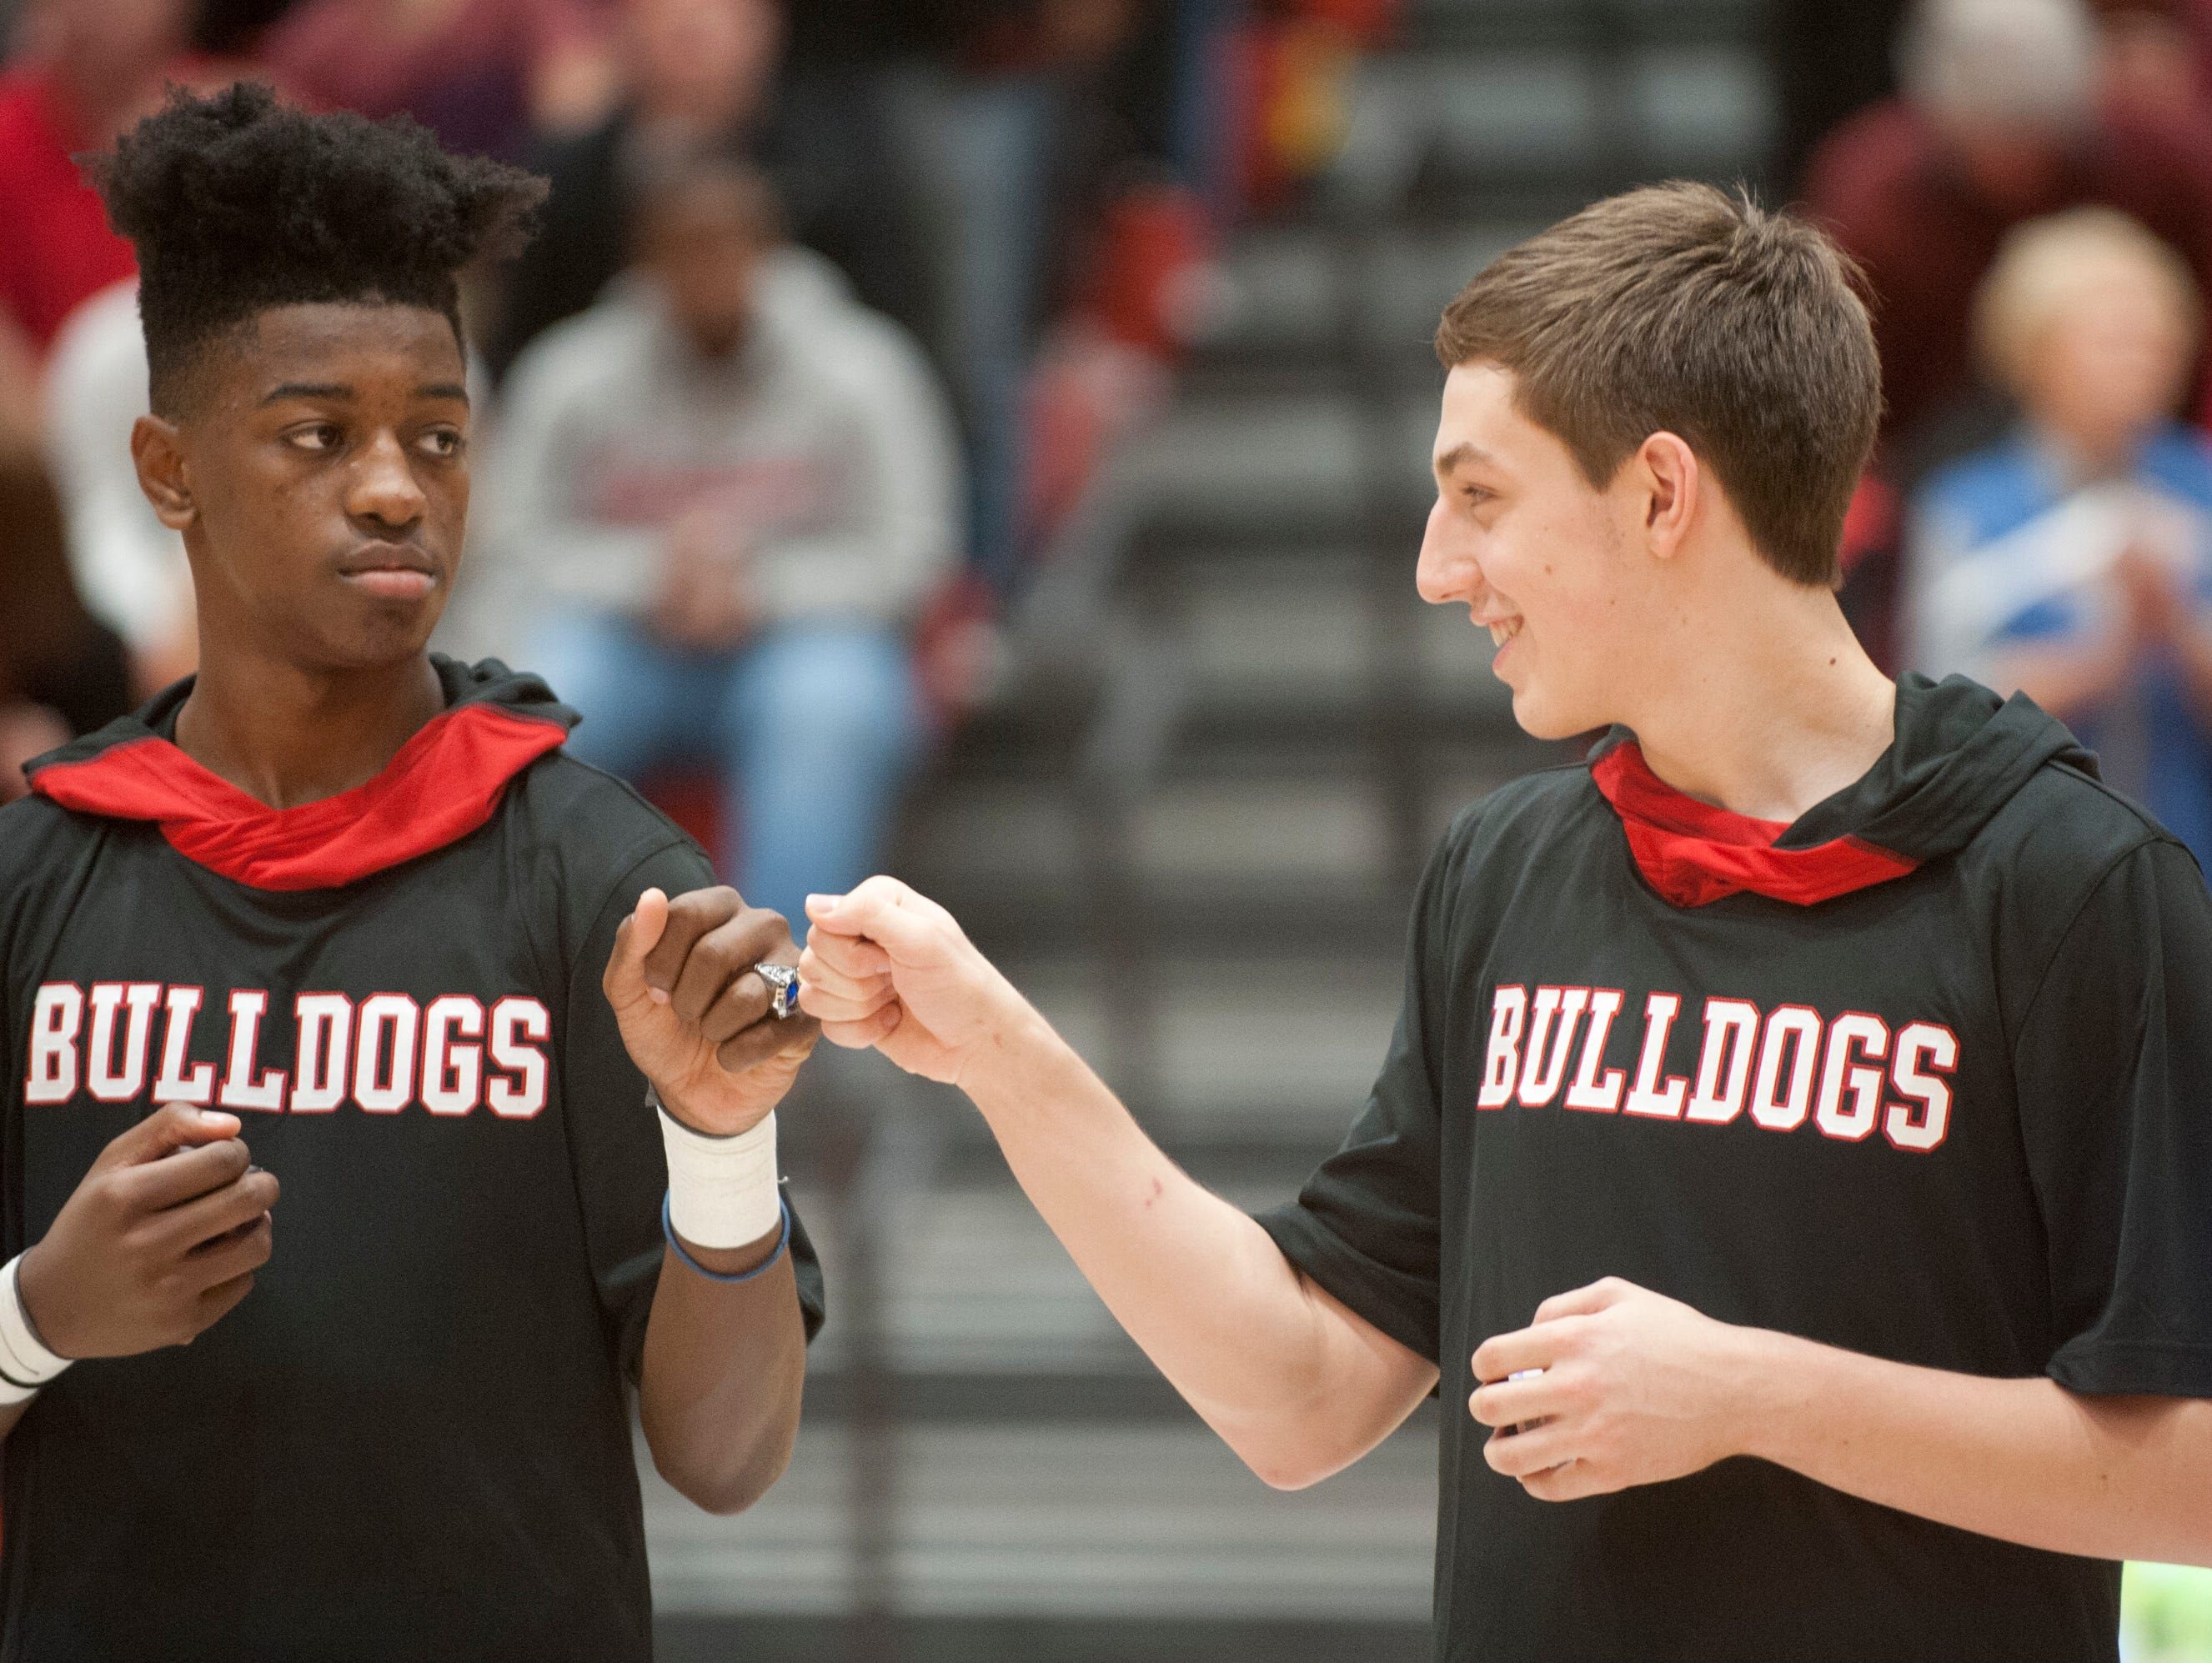 New Albany's Sean East knocks 2016 Indiana High School Boys Basketball Championship rings with teammate Isaac Hibbard after the entire team was honored prior to start of the game against Bloomington South. 26 November 2016